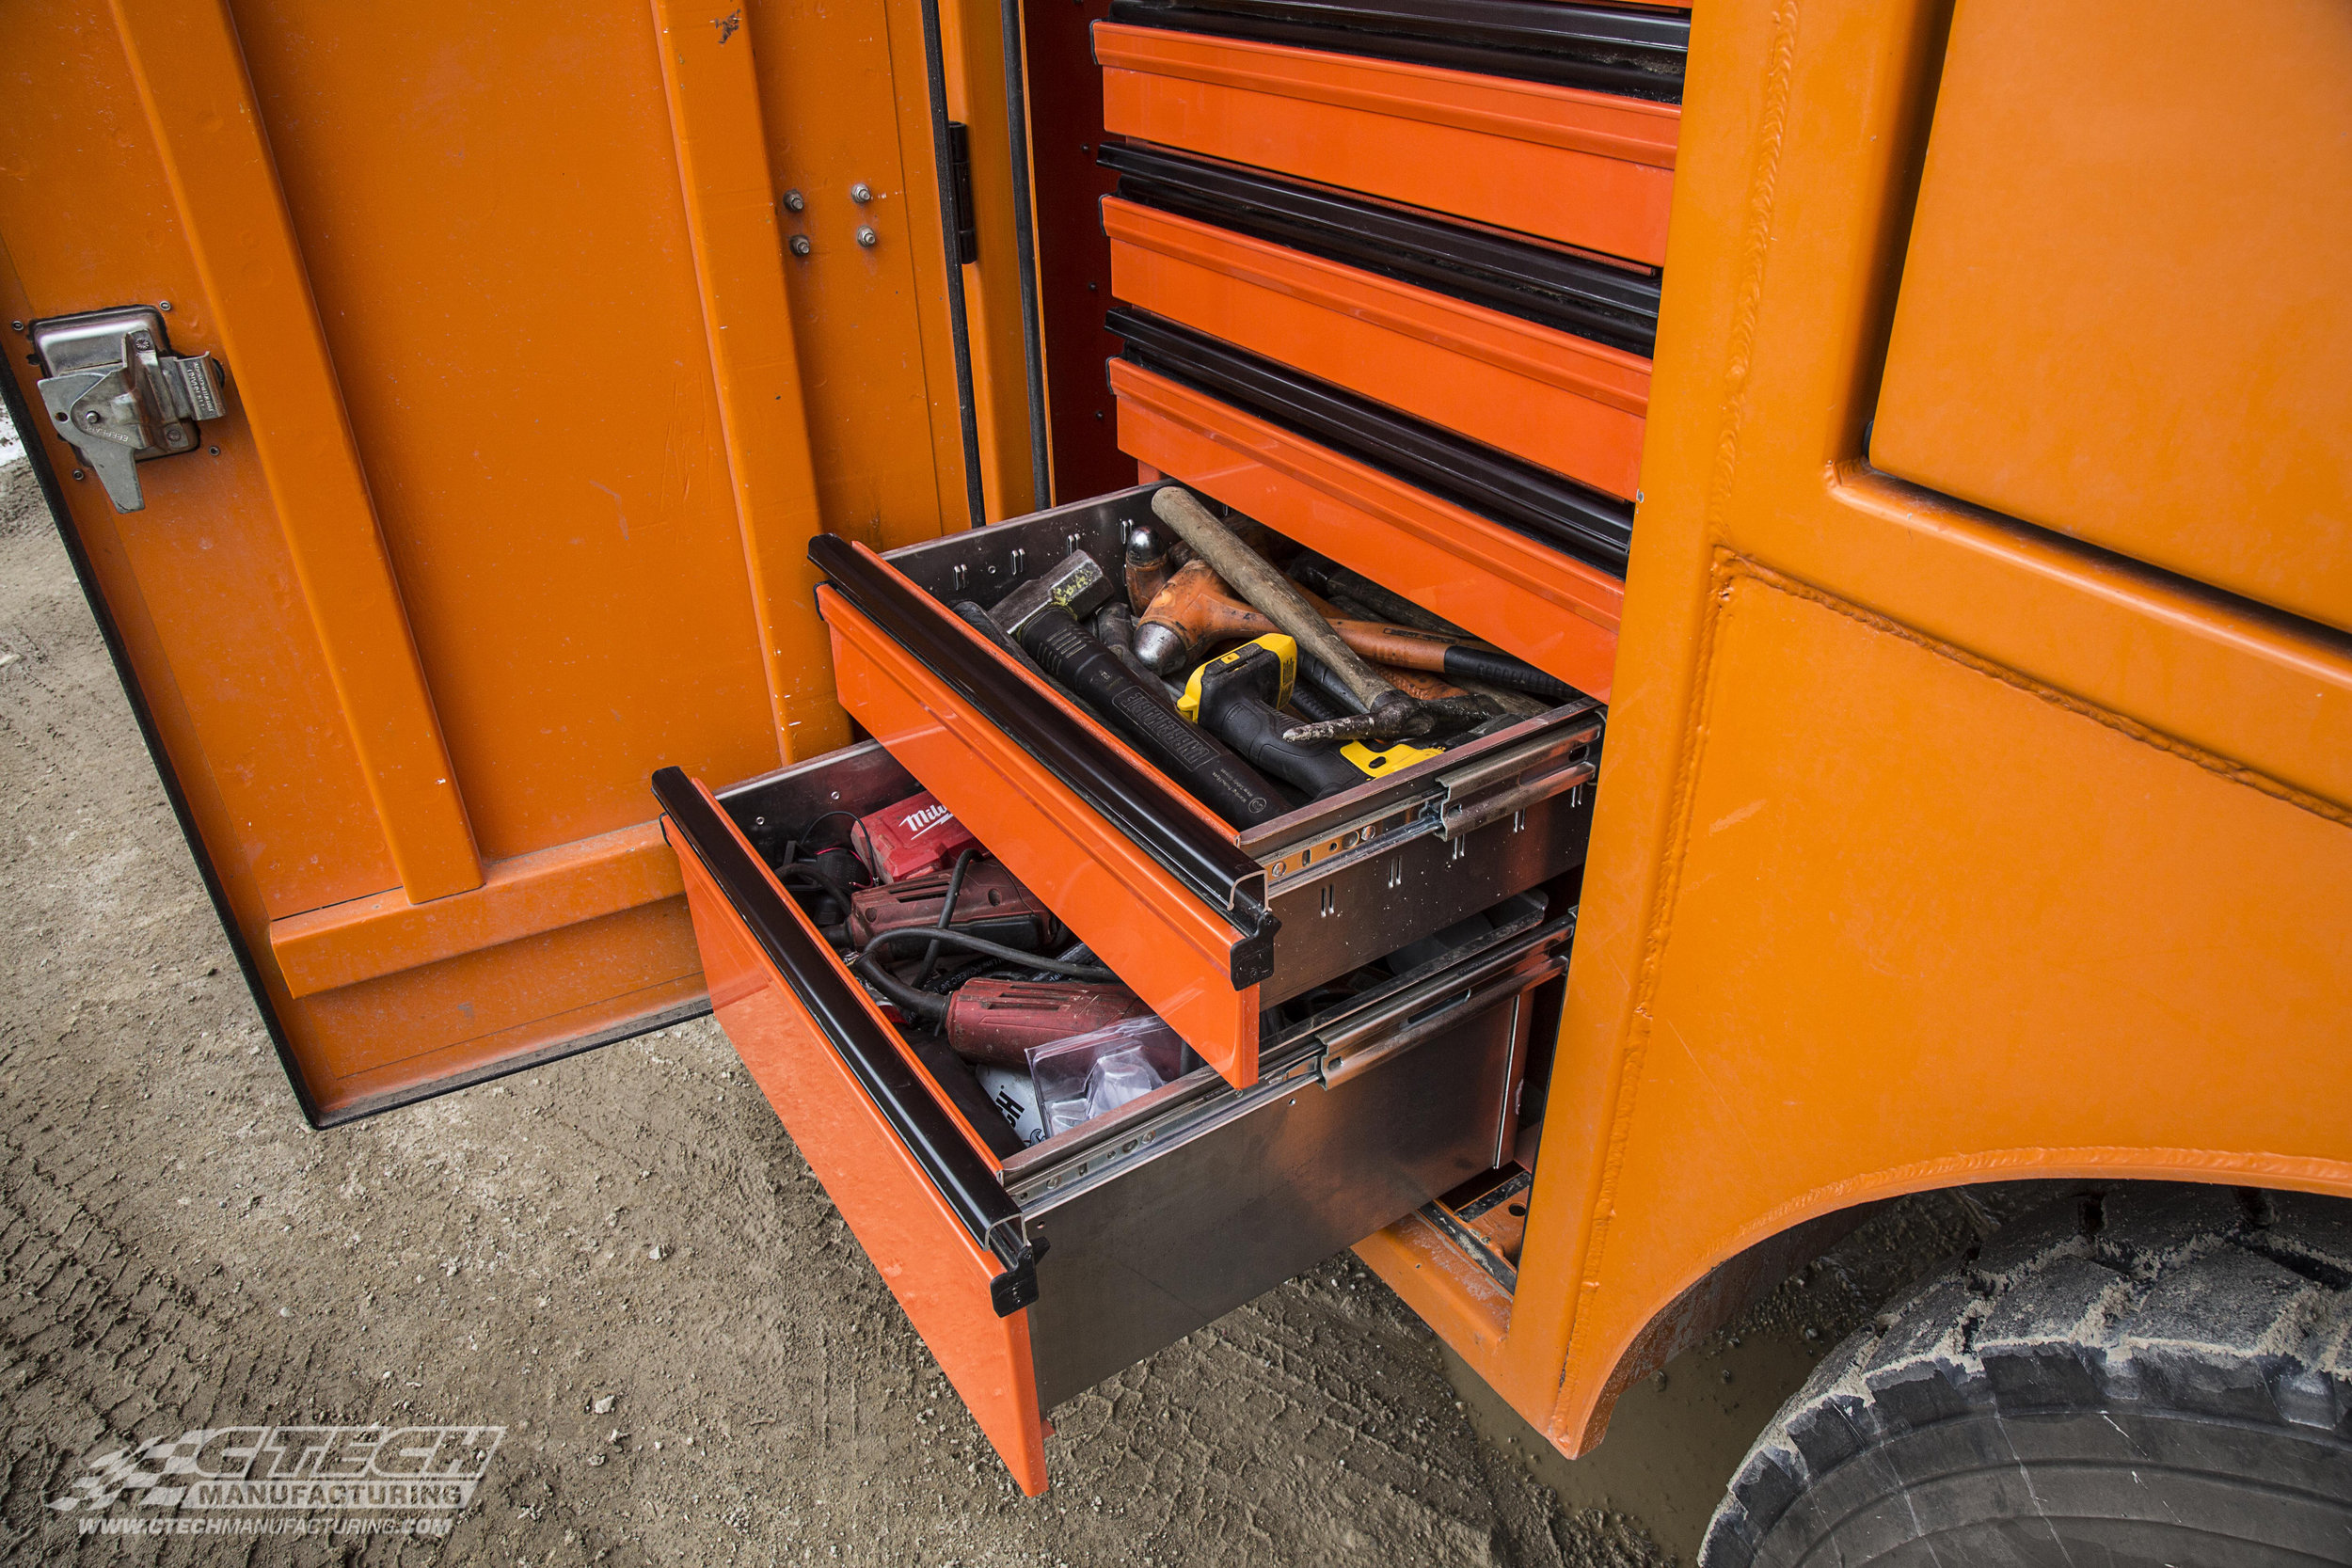 With a 250lb standard weight rating, CTech Tool Drawers are tough enough to handle everything you can throw into them, literally!